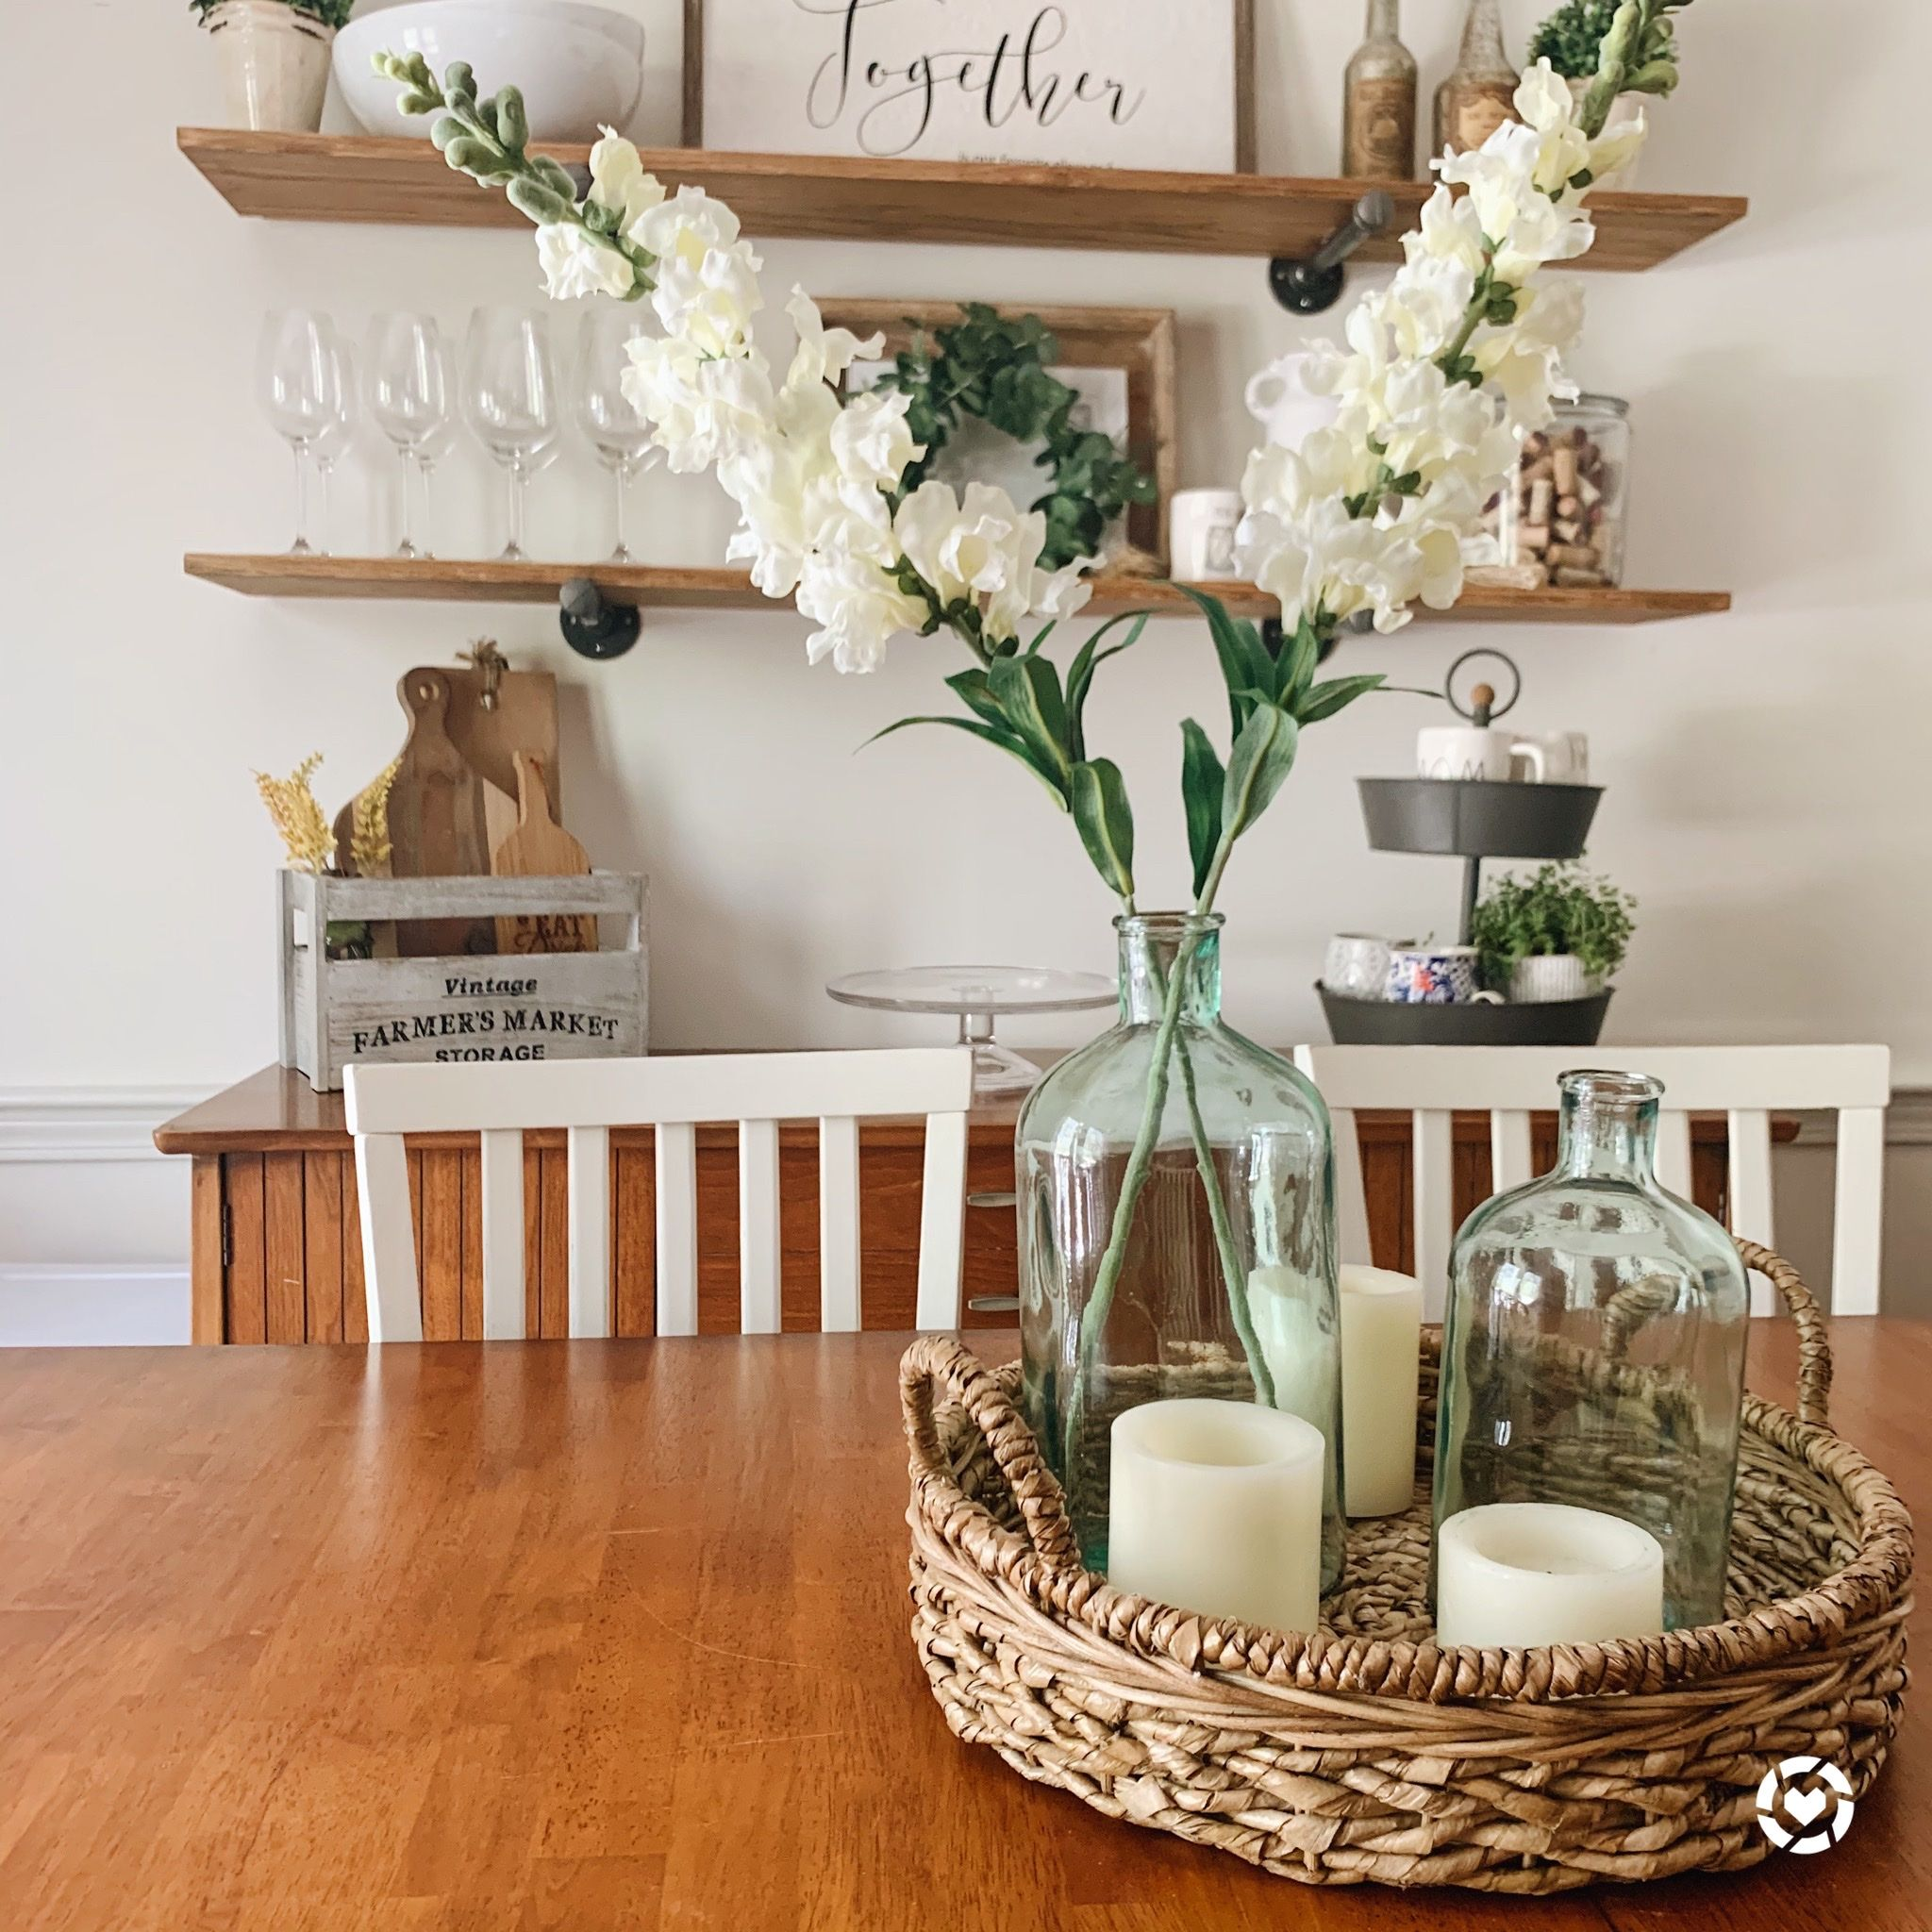 Farmhouse Dining Room Decor Spring To Summer Dining Room Centerpiece Table Centerpieces For Home Dining Room Table Decor